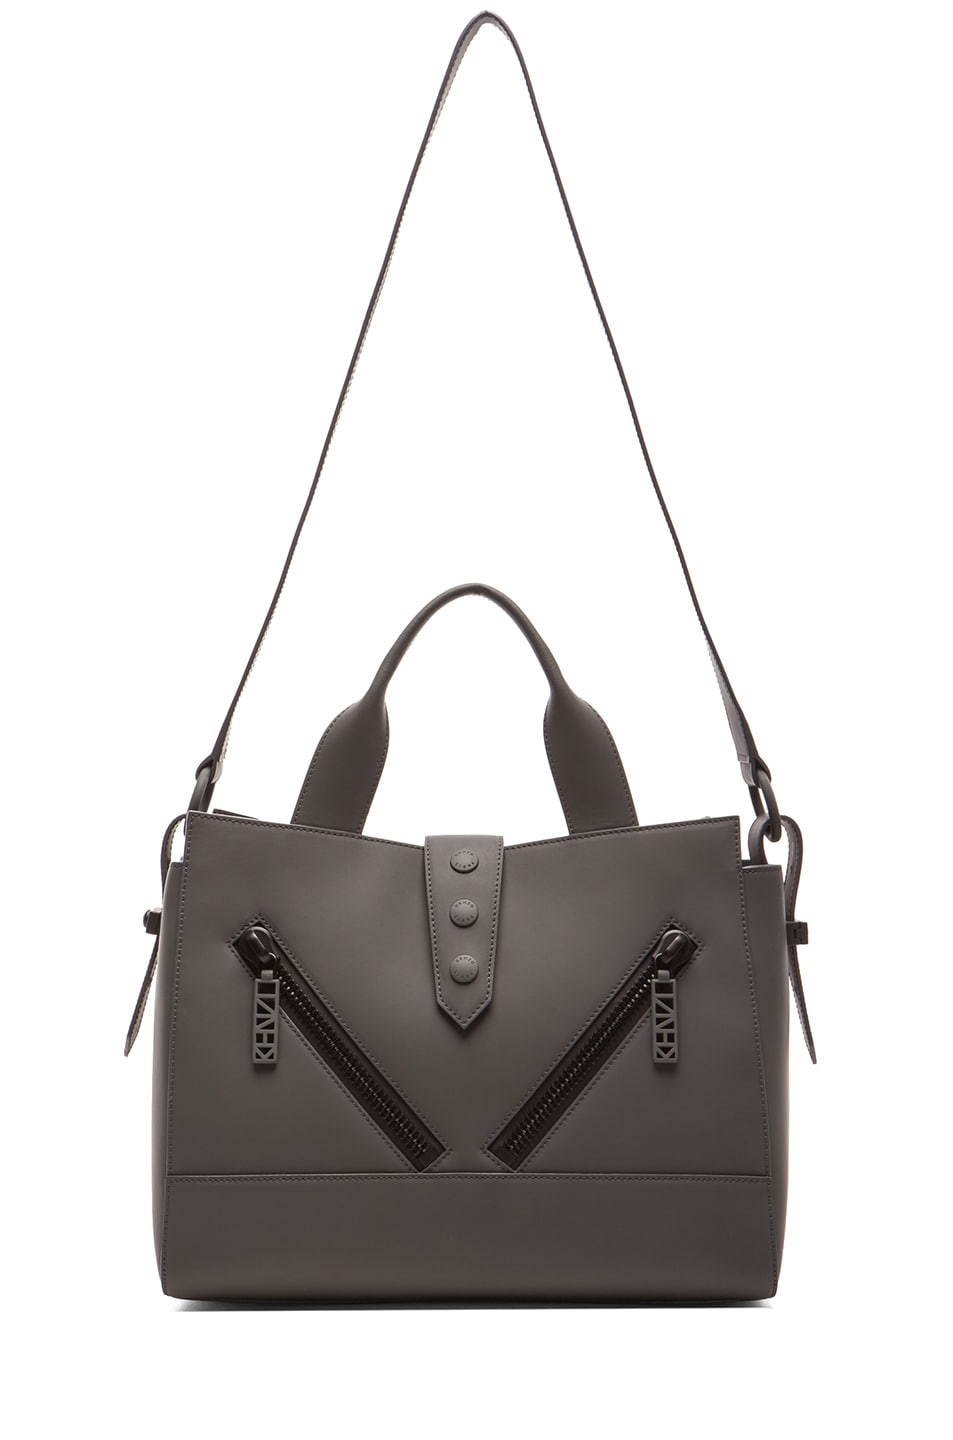 a707c29702 Image 5 of Kenzo Medium Kalifornia Bag in Anthracite